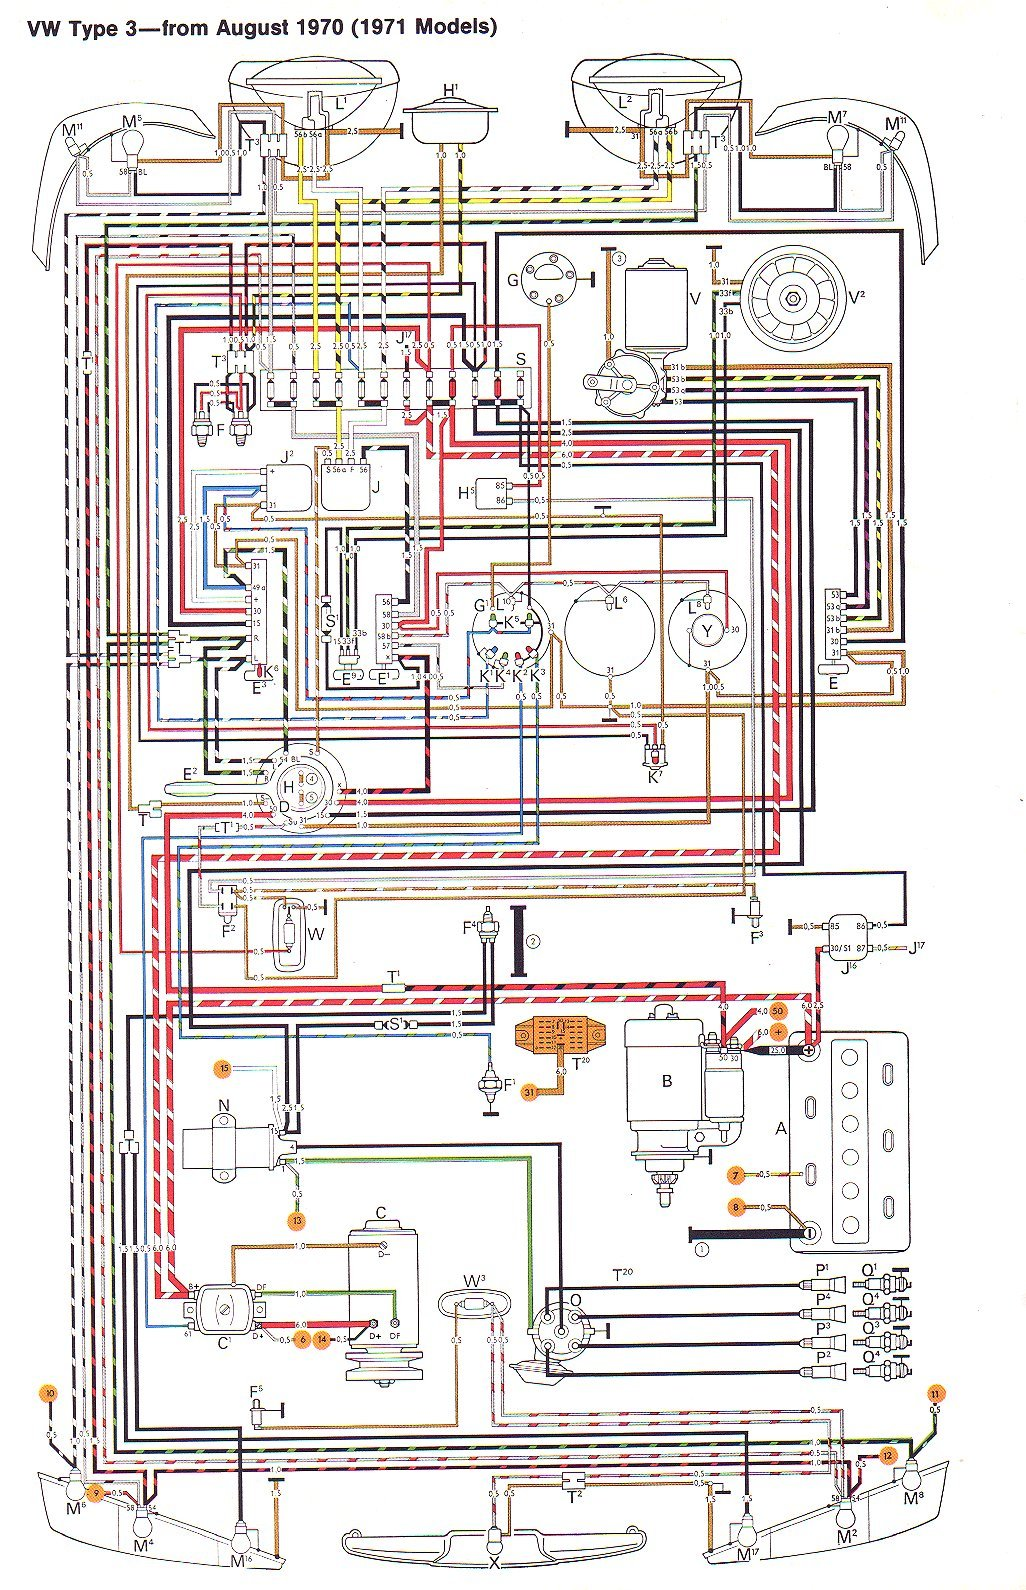 Vw Starter Solenoid Wiring Diagram Electrical Diagrams How To Wire A 53 Ford For 1972 Find U2022 Rh Empcom Co Basic